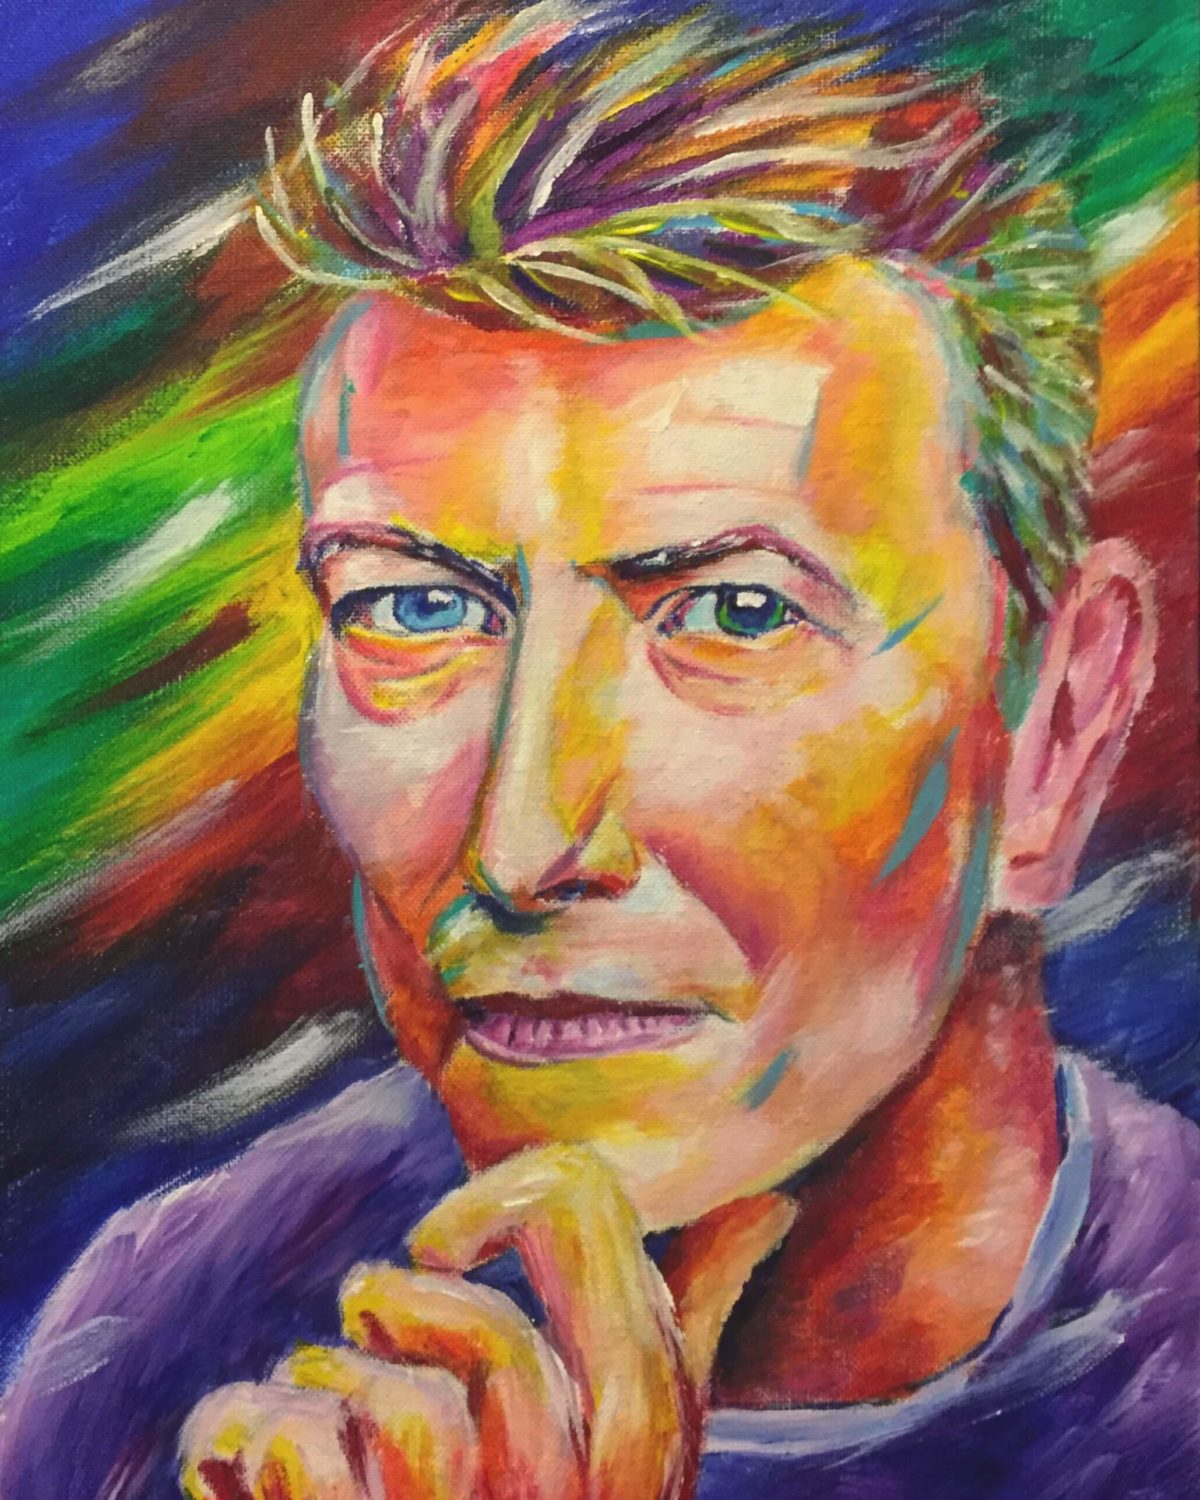 David Bowie 12x16 Acrylic on Canvas by Taylor Wise